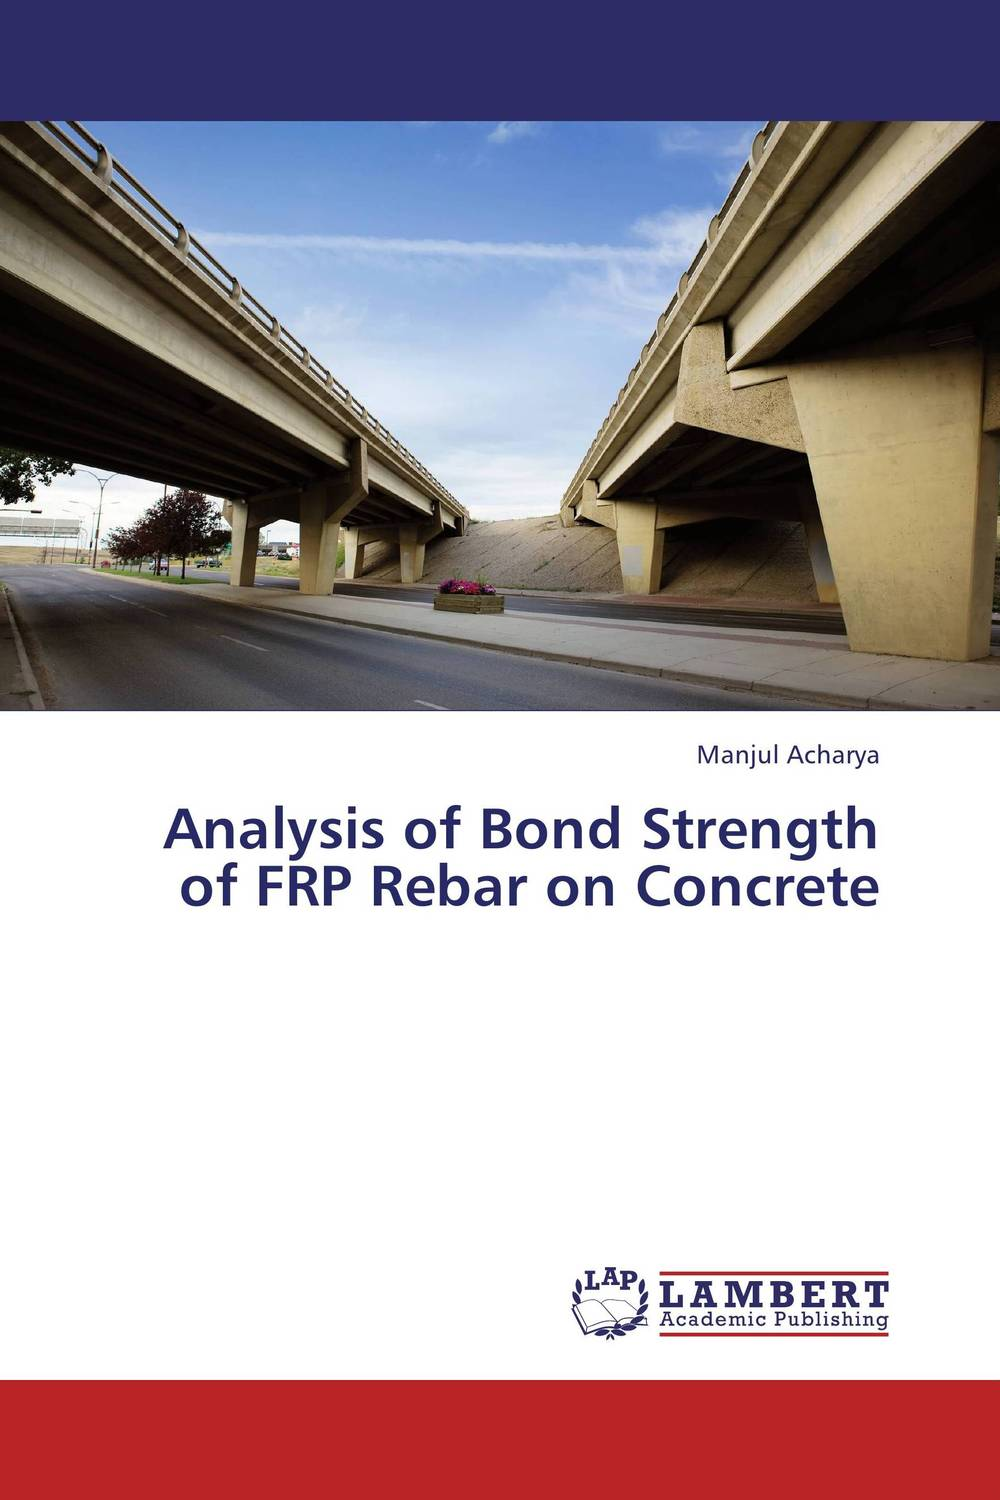 Analysis of Bond Strength of FRP Rebar on Concrete treatment effects on microtensile bond strength of repaired composite